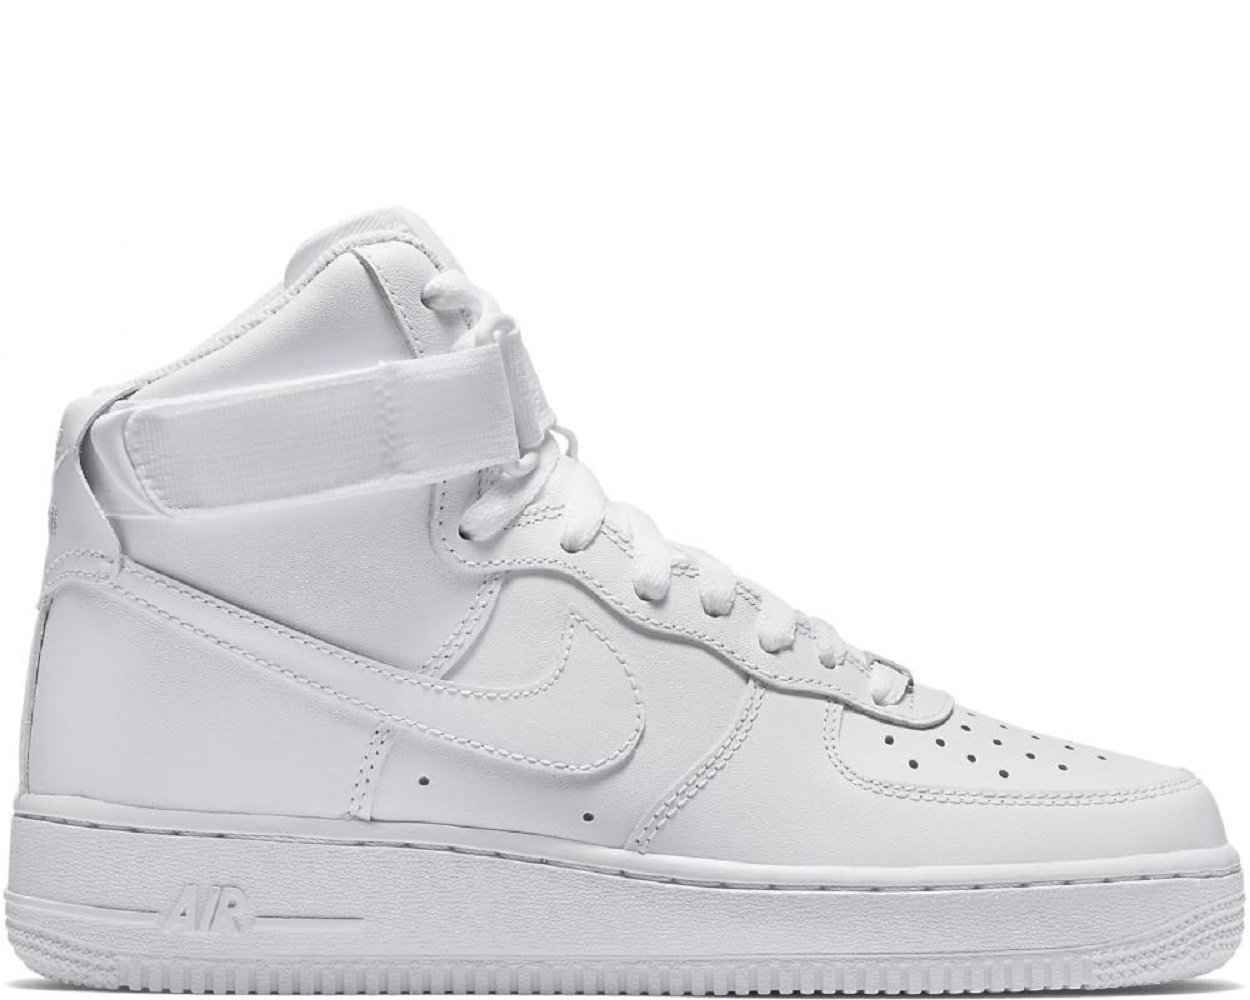 Nike AIR FORCE 1 HIGH womens basketball-shoes 334031-105_7 - WHITE/WHITE-WHITE